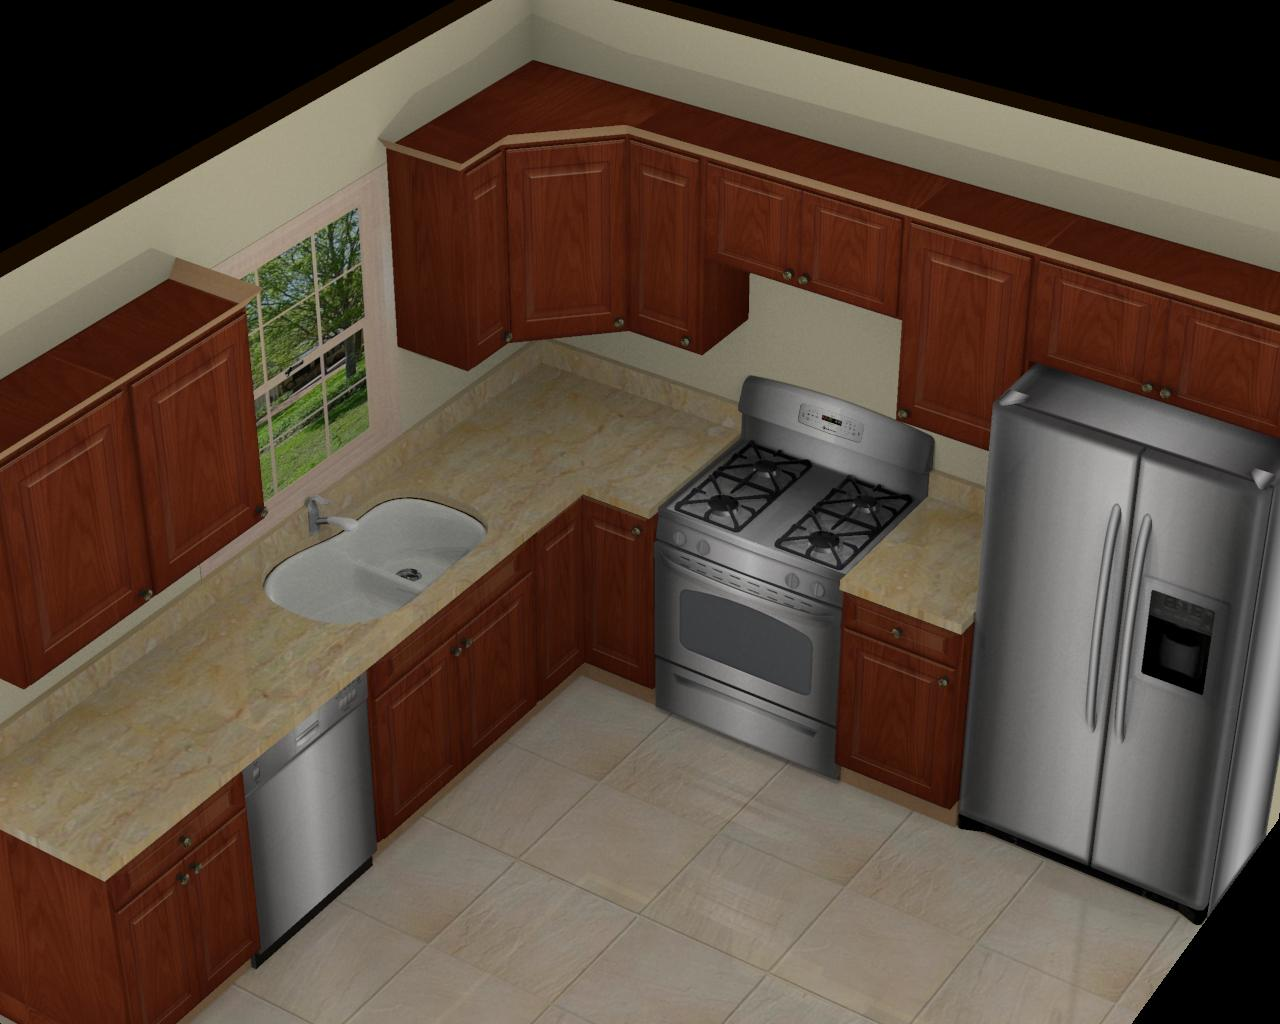 Foundation dezin decor 3d kitchen model design for Kitchen cabinets and design